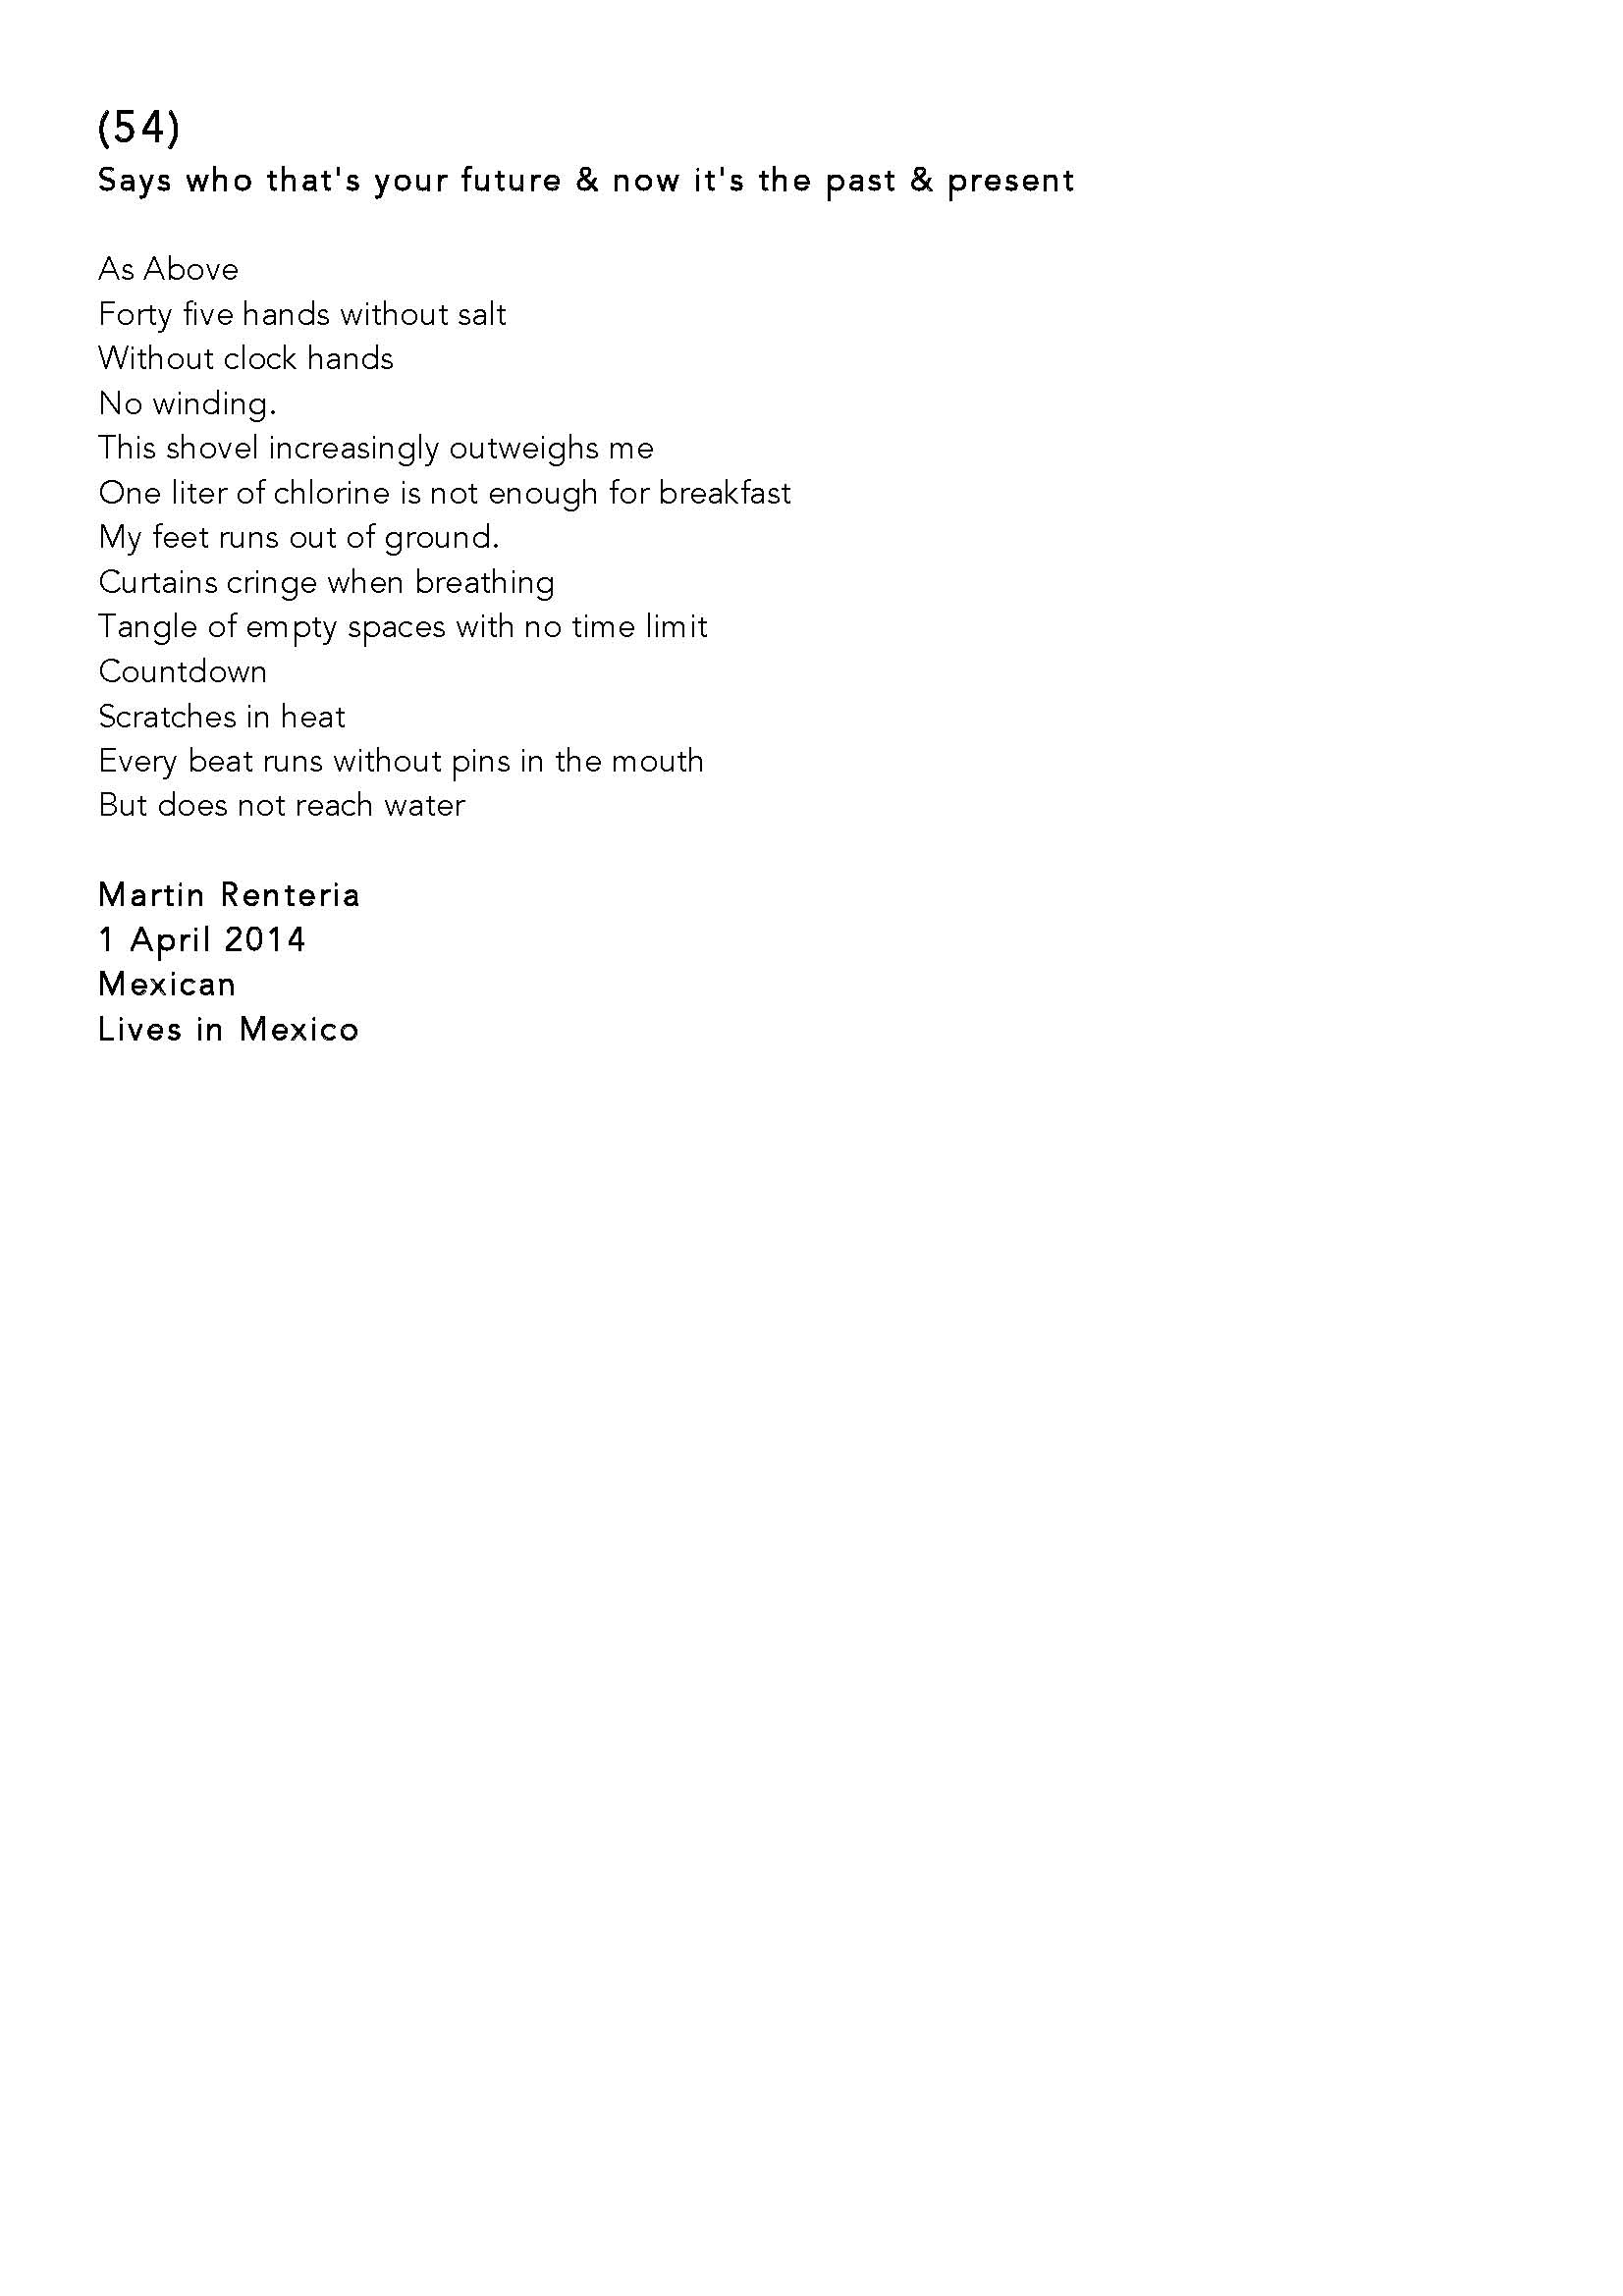 Poetry Collection - Everyone can Poetry_March 2014_Page_54.jpg